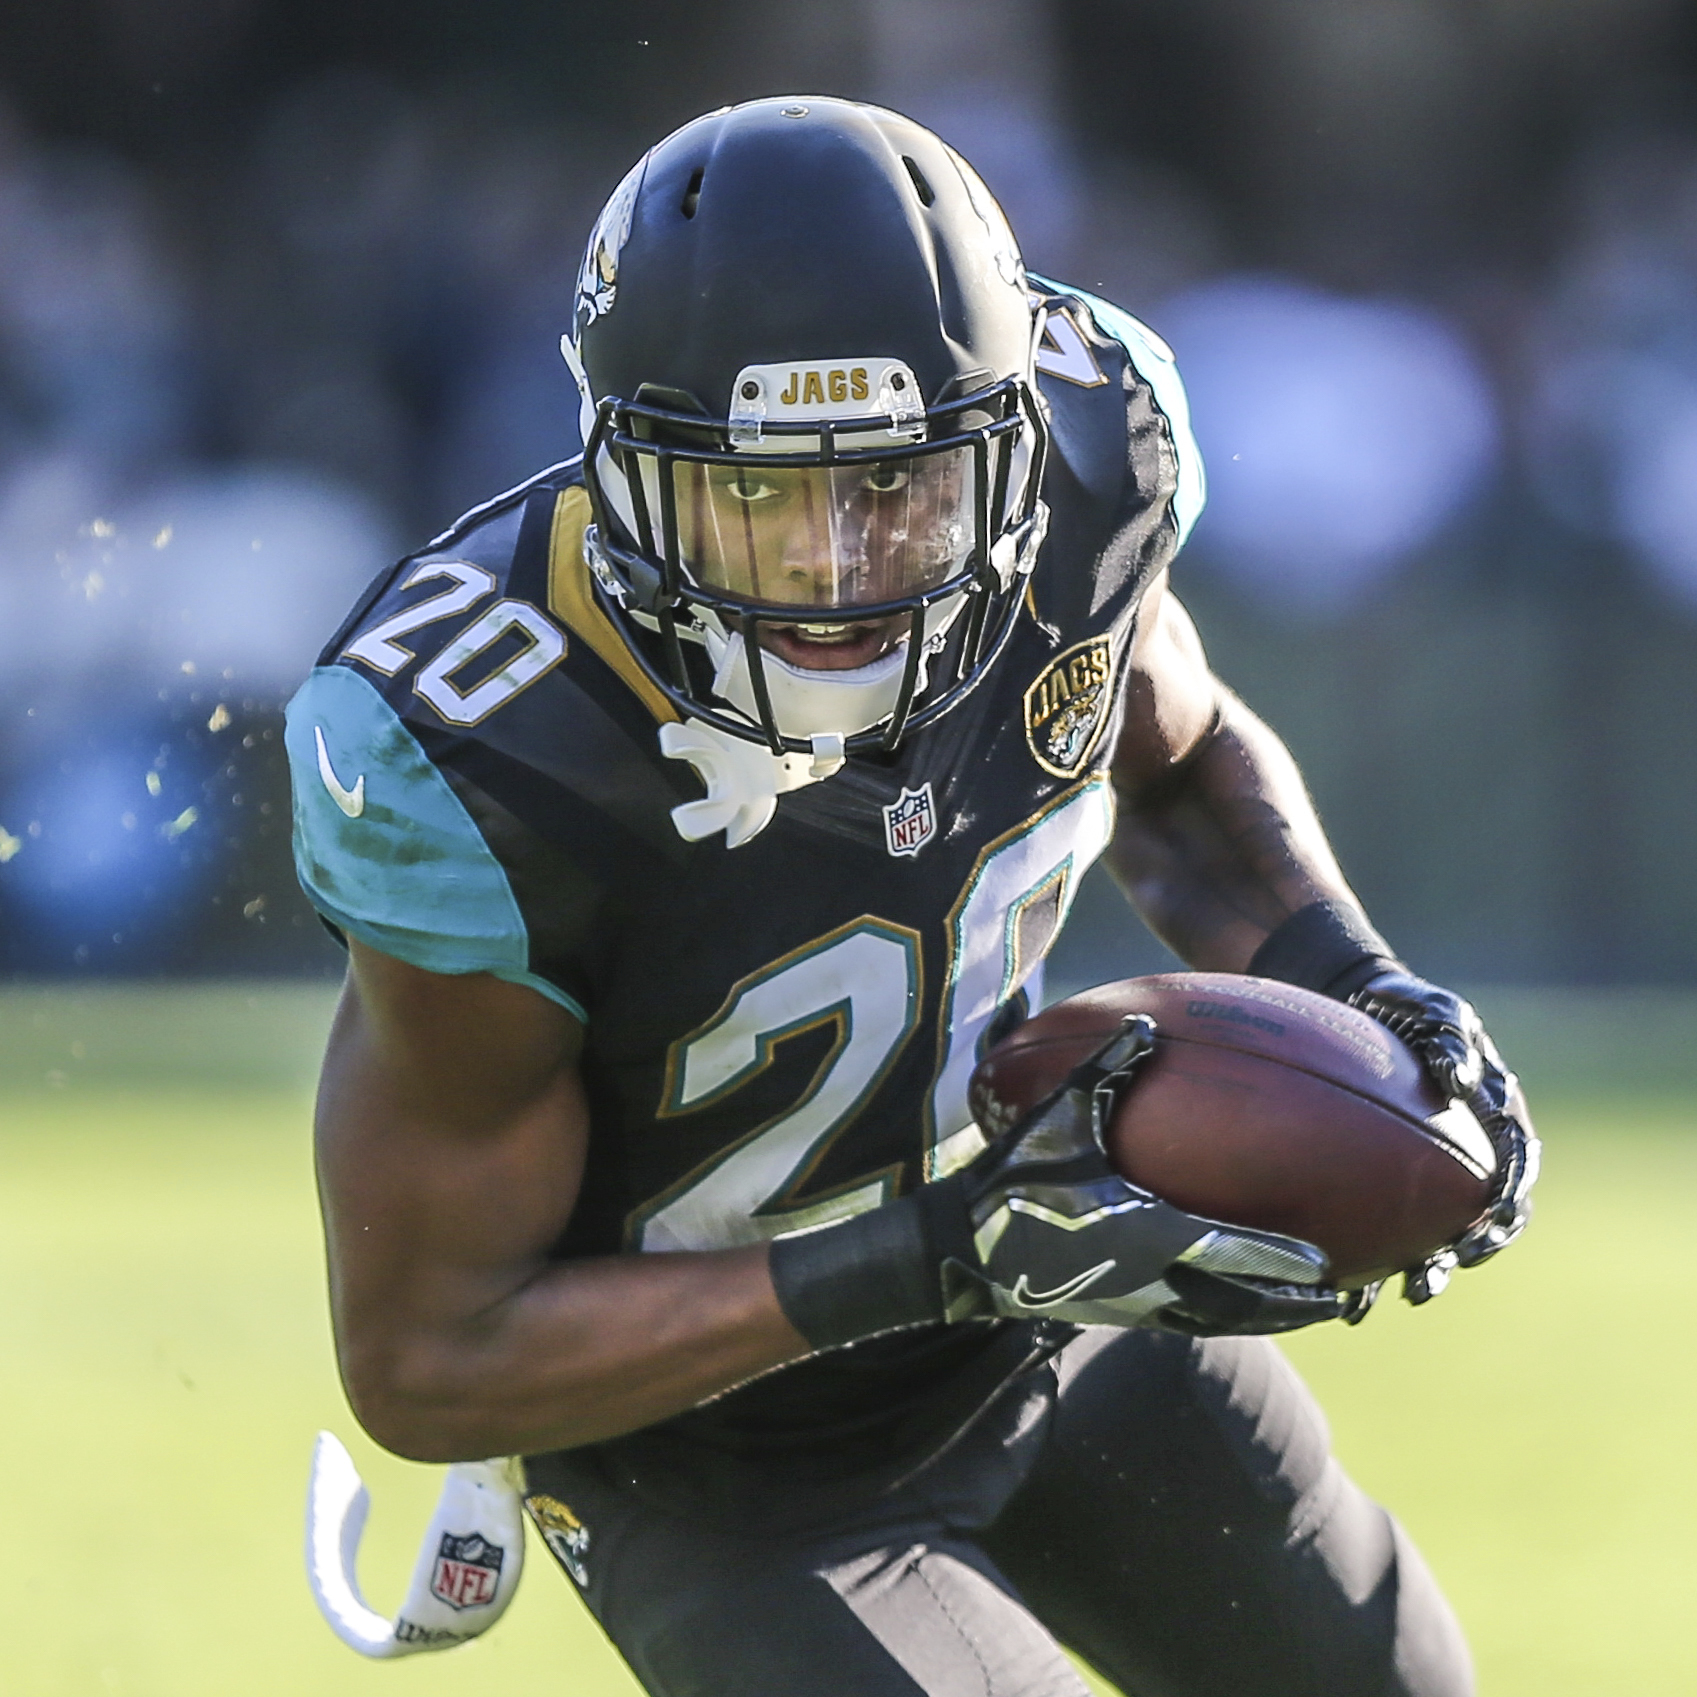 CORRECTS SECOND REFERENCE - In this Saturday, Dec. 24, 2016, photo, Jacksonville Jaguars cornerback Jalen Ramsey returns an interception for a touchdown against the Tennessee Titans during the second half of an NFL football game in Jacksonville, Fla. Rams